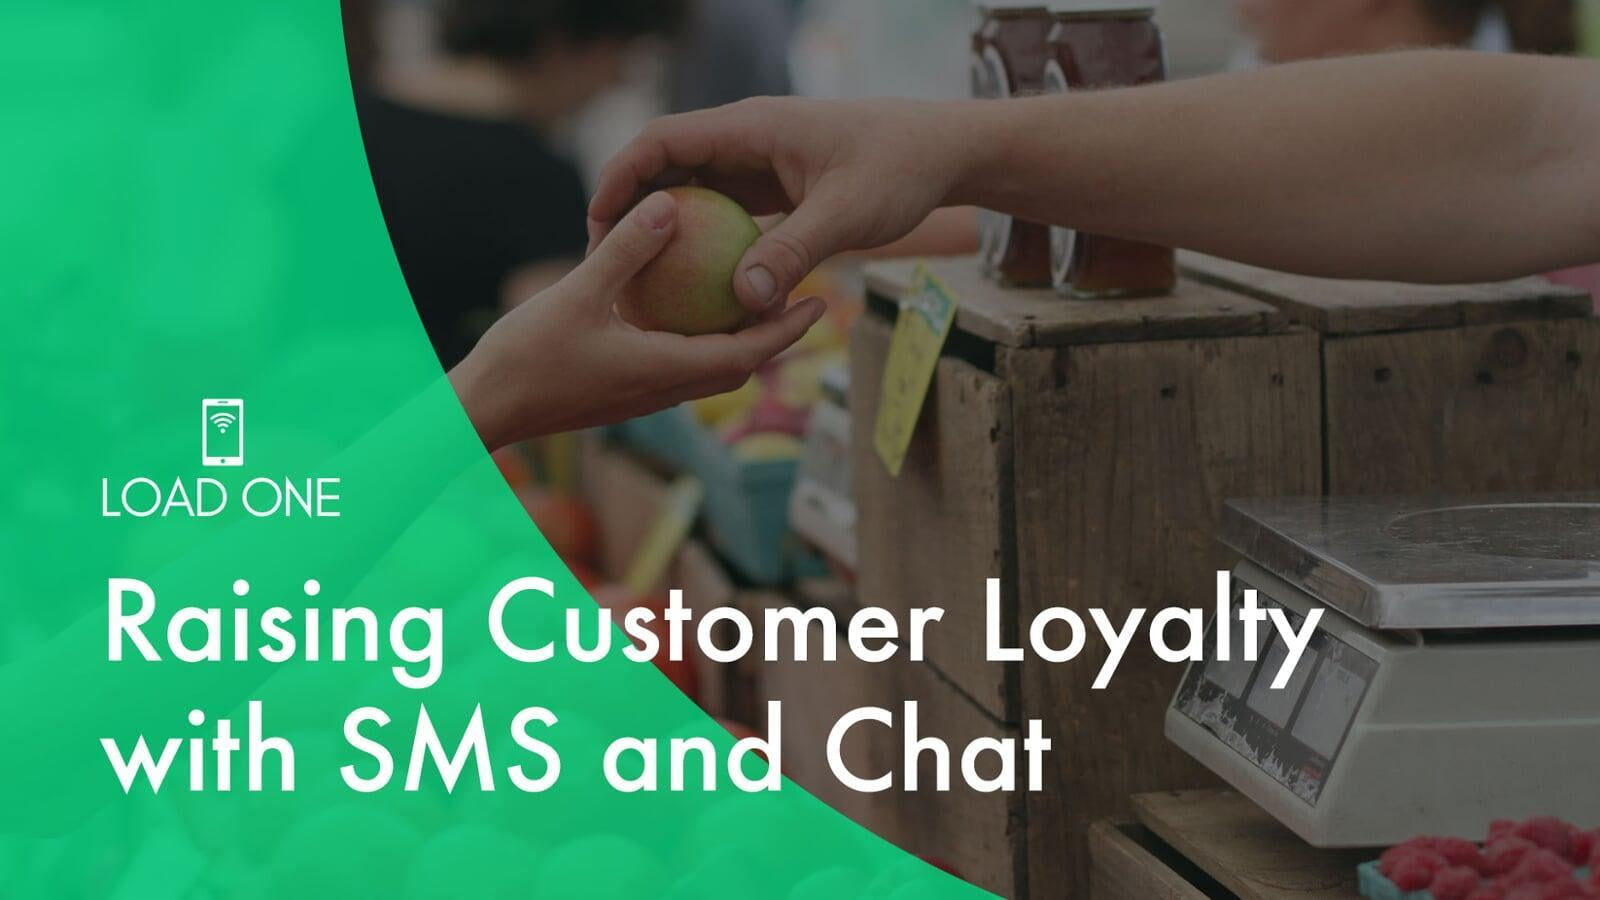 Raising Customer Loyalty with SMS and Chat